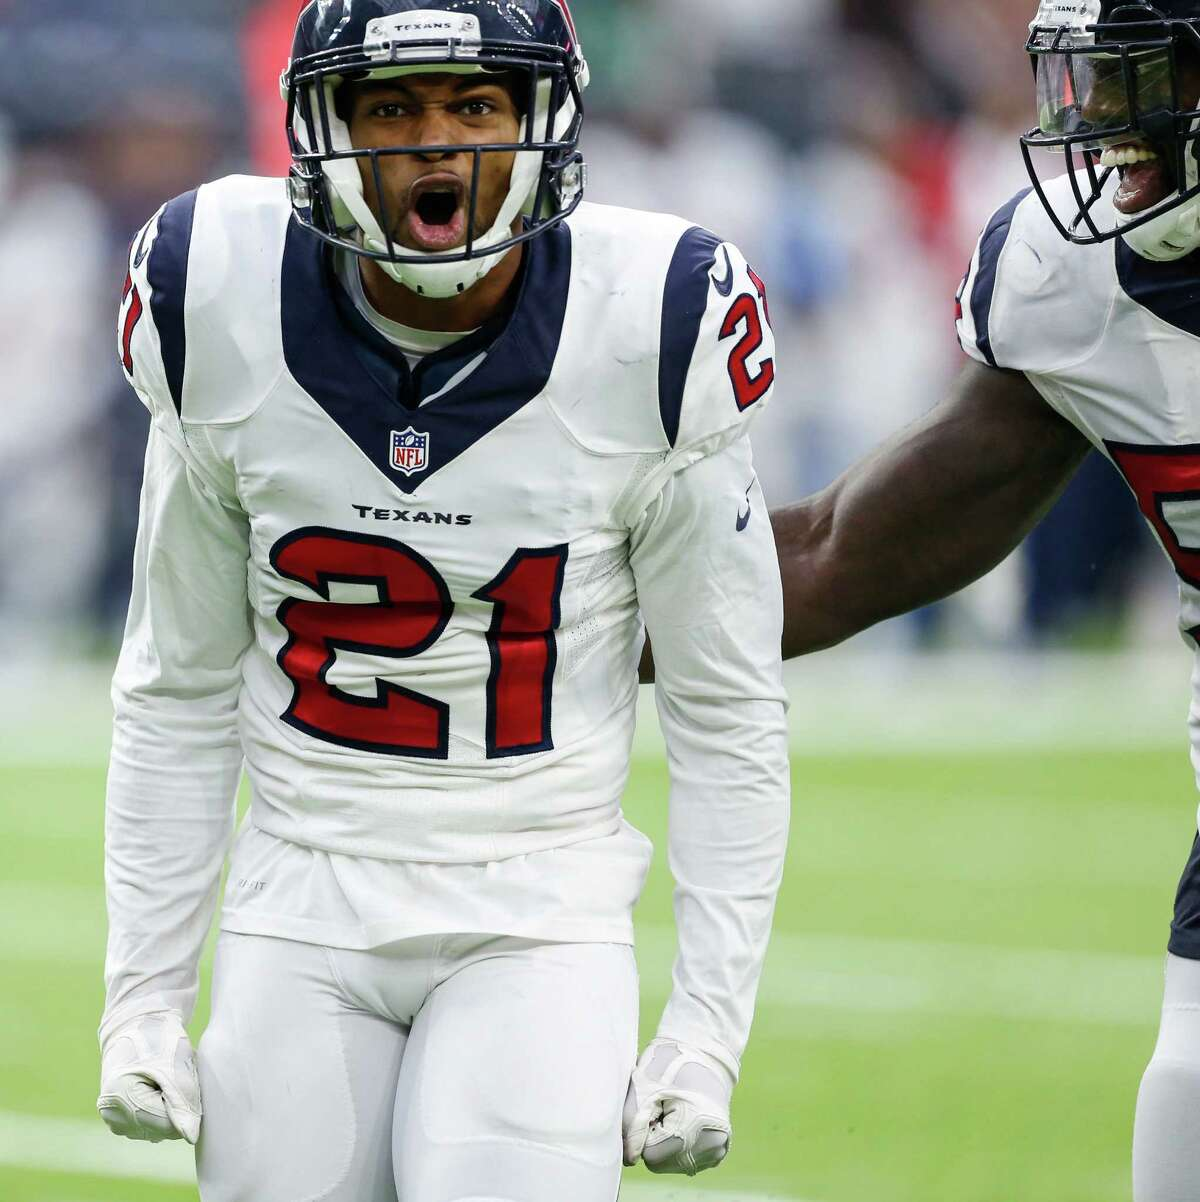 Consistent improvement by A.J. Bouye has earned him more playing time.